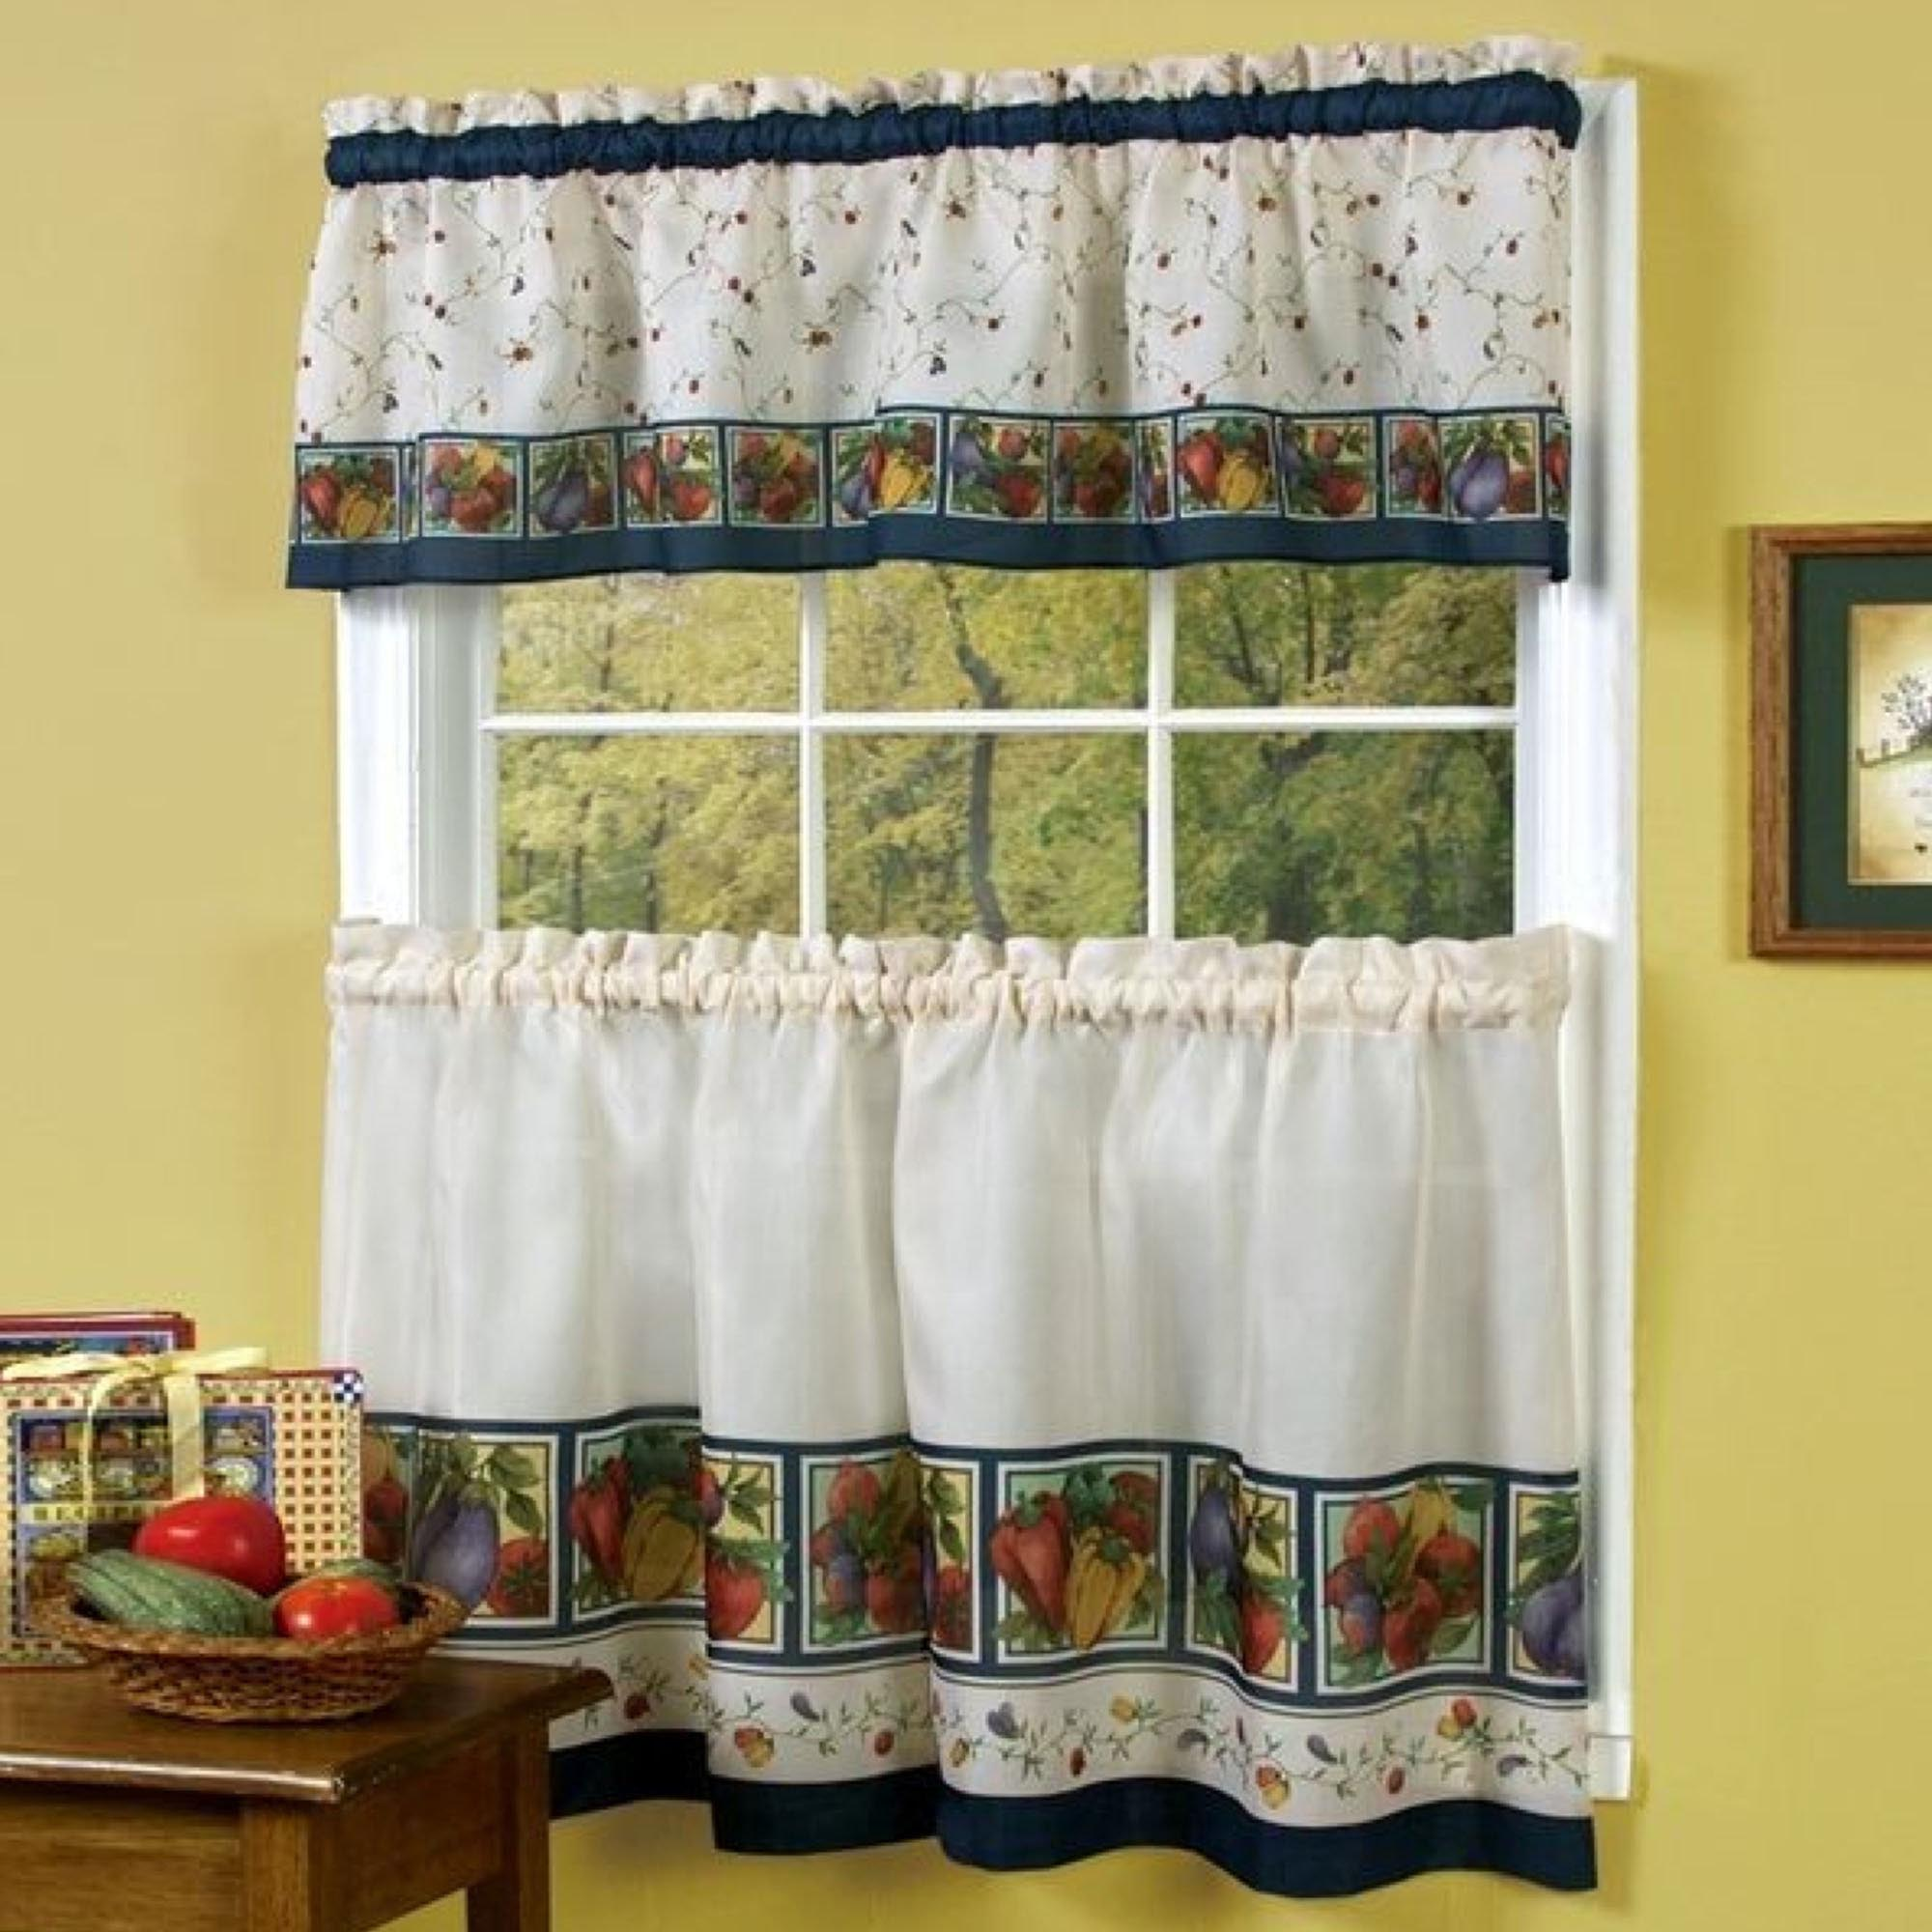 Window Valances for Kitchen